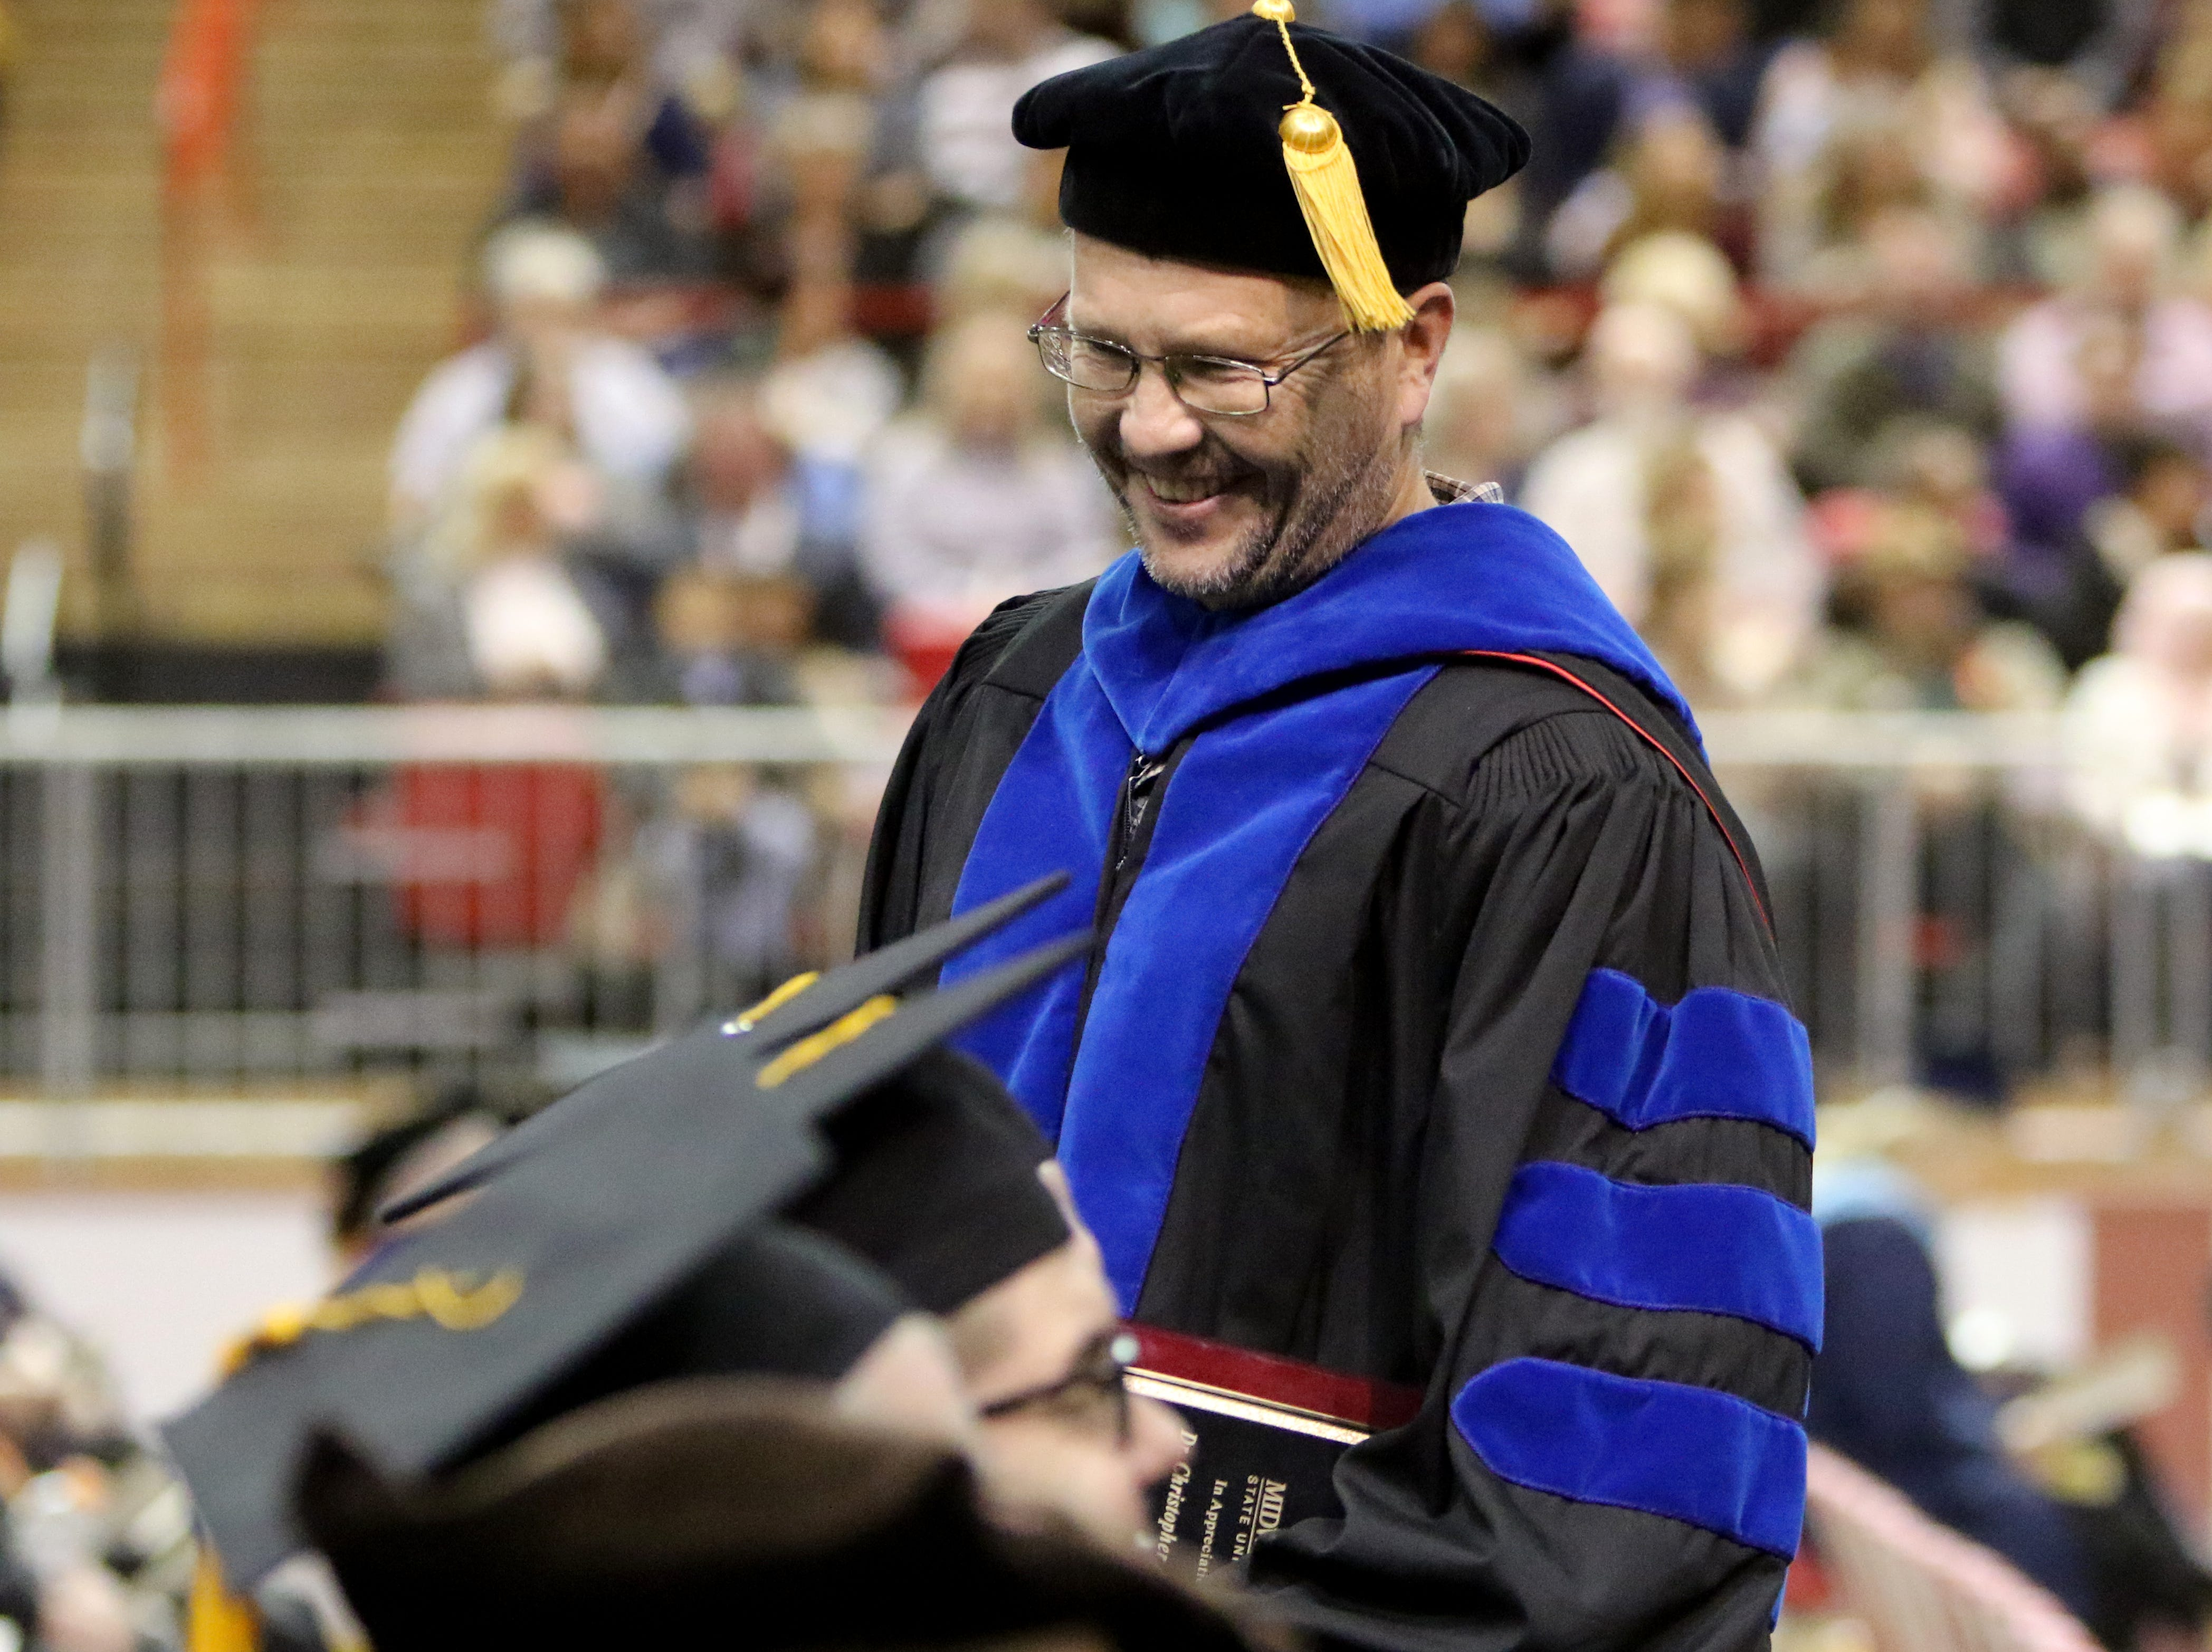 Midwestern State University Associate Professor of chemistry Chris Hansen returns to his seat after recieving his Faculty Award at the fall commencement ceremony Saturday, Dec. 15, 2018, in Kay Yeager Coliseum at the MPEC. The award is given to ful-time faculty members for teaching excellance and service to the university.